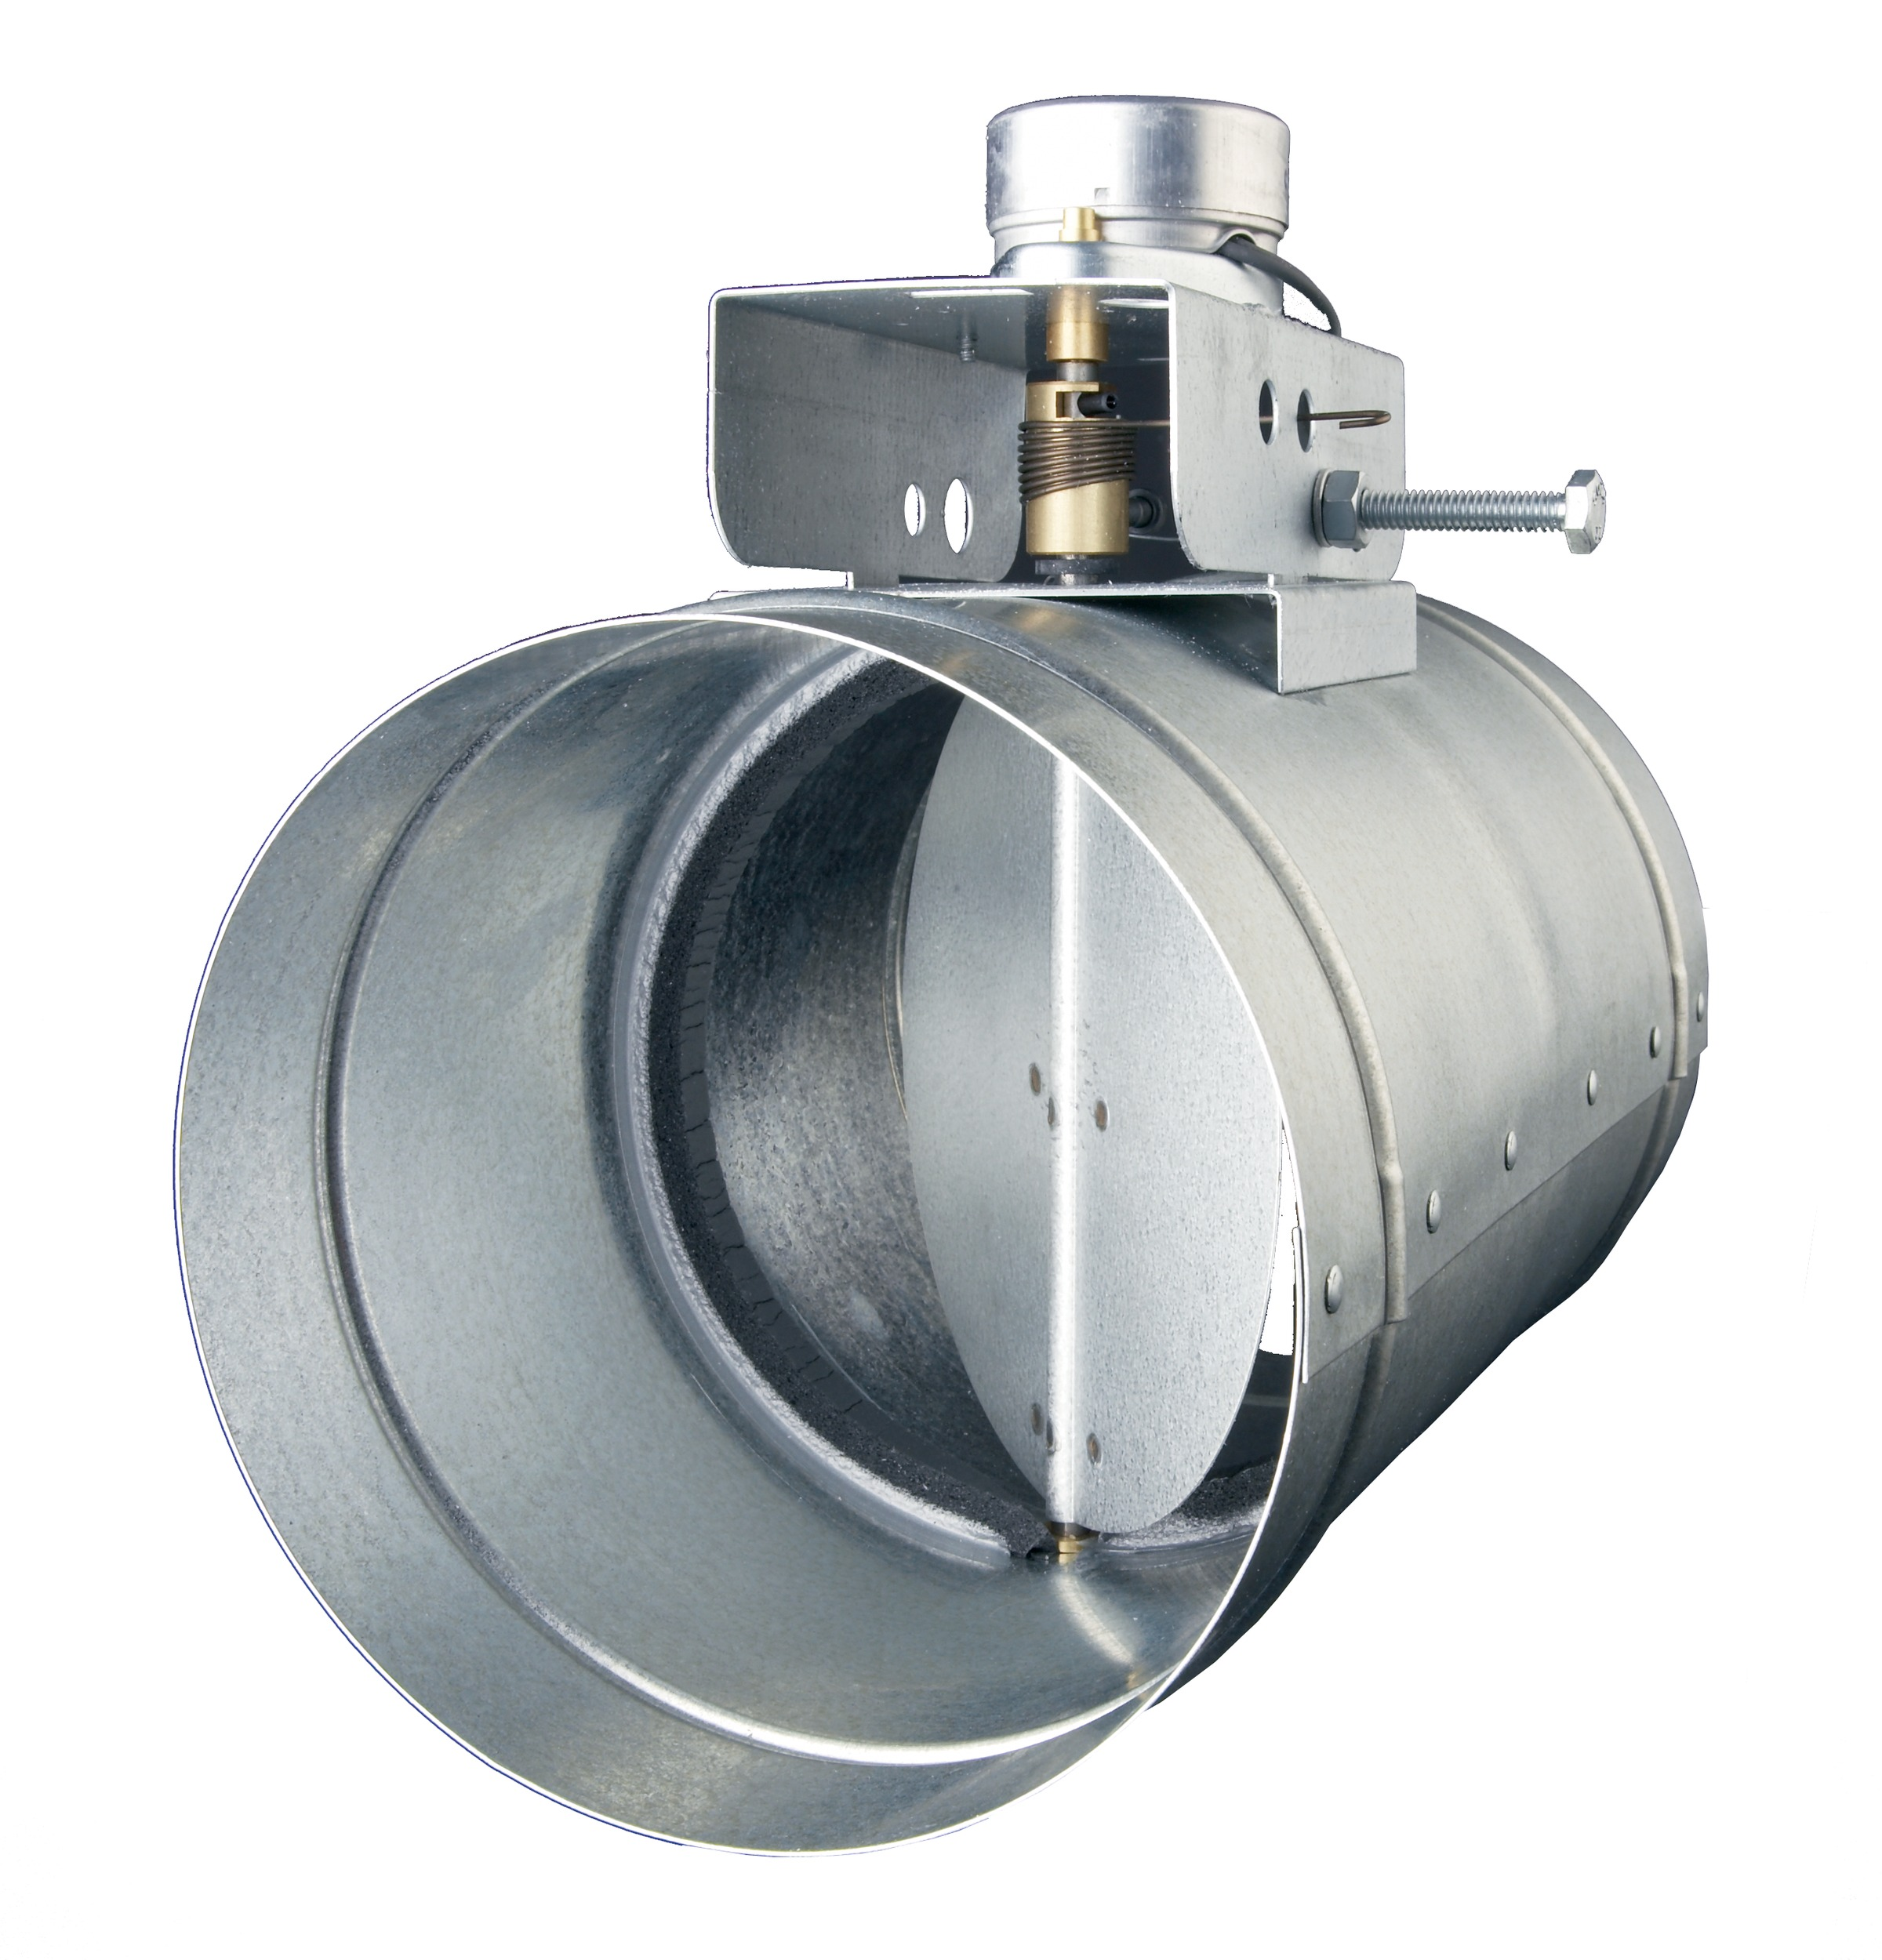 Universal Automatic Make Up Air Damper For 6 Duct